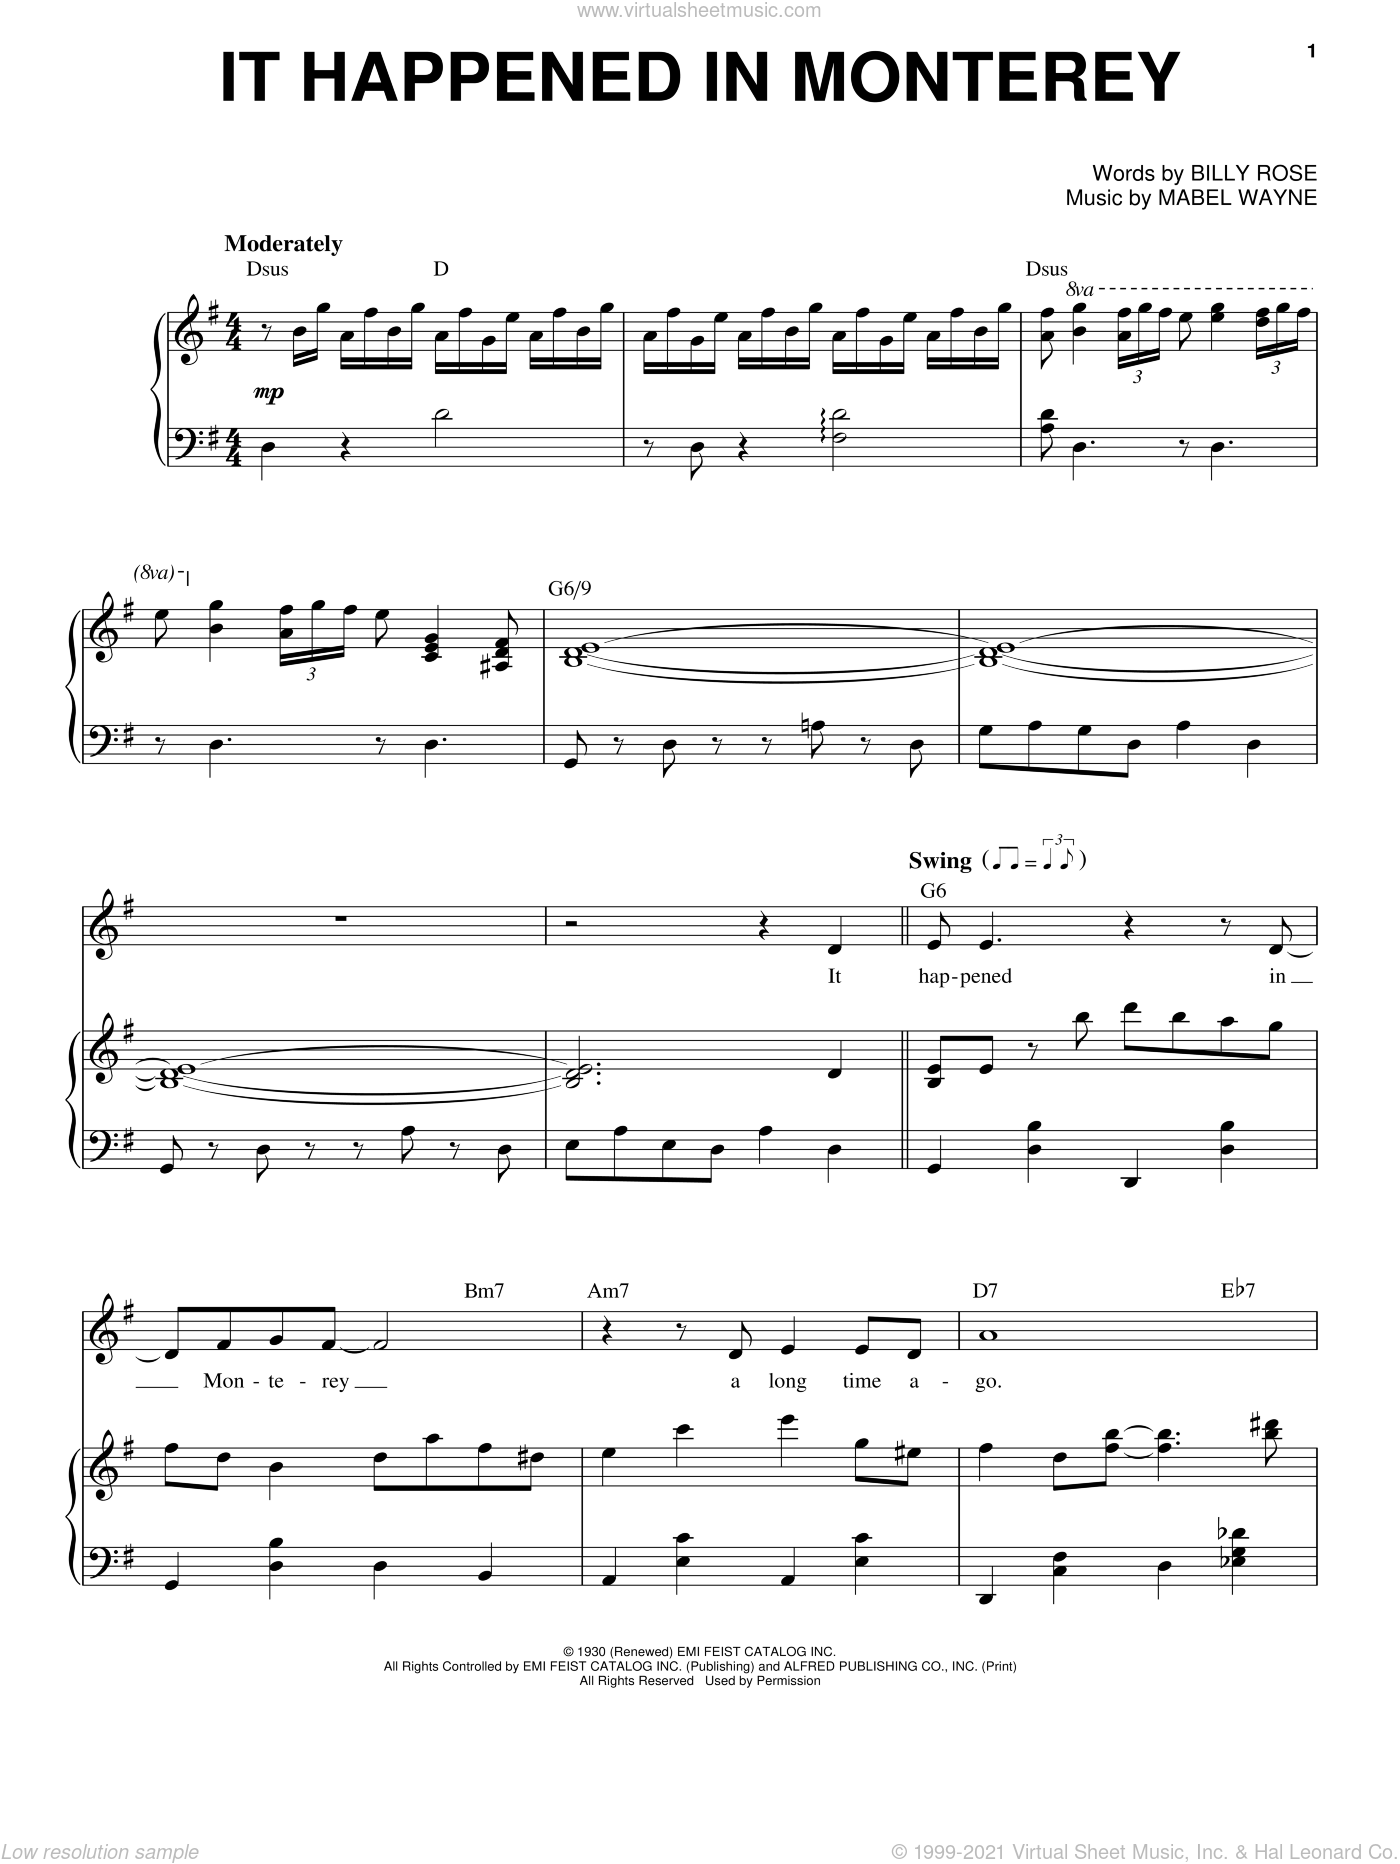 It Happened In Monterey sheet music for voice and piano by Mabel Wayne